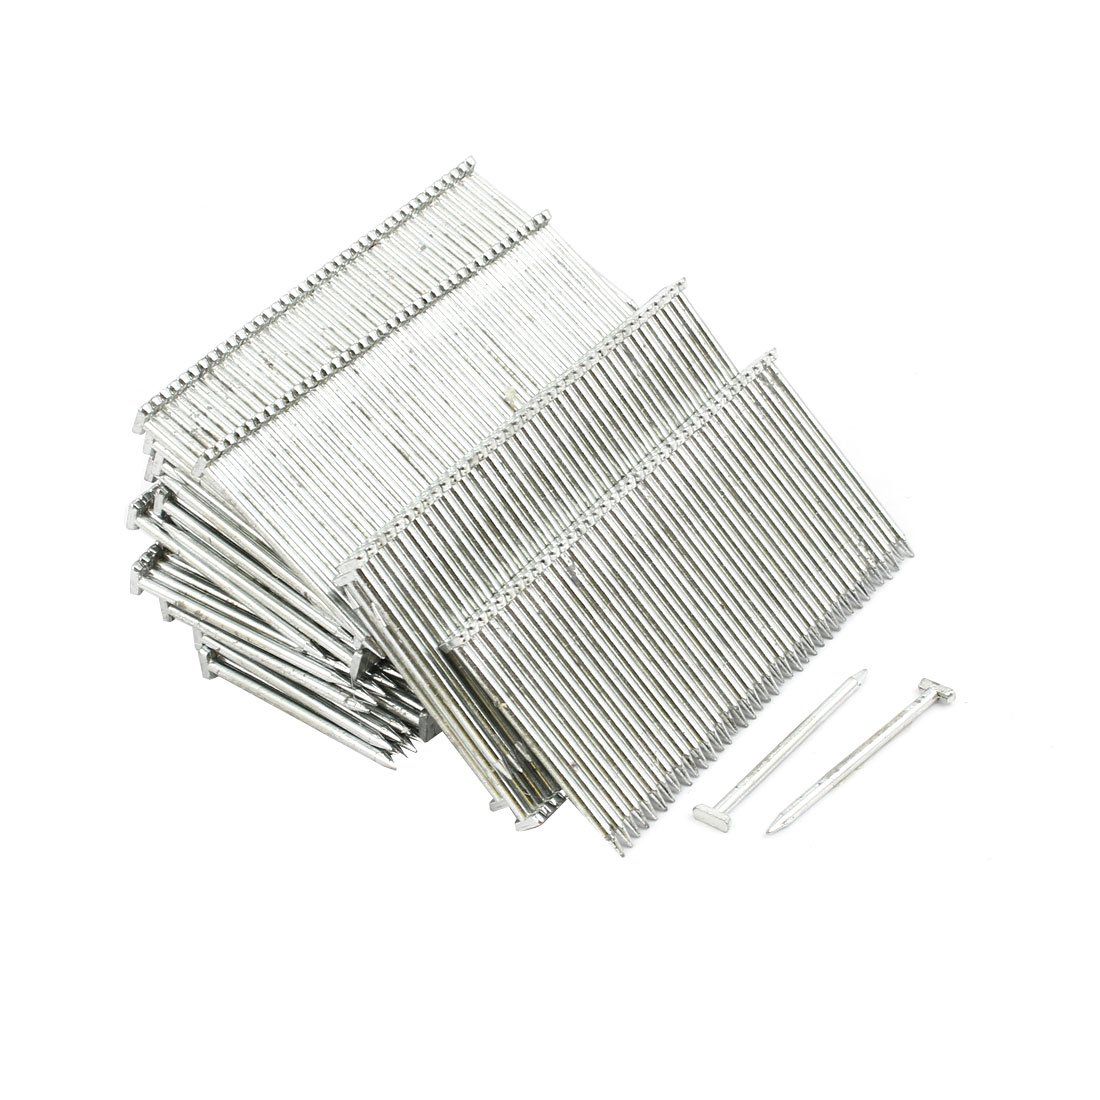 uxcell Motherboard 38P Steel Terminal Header Silver Tone 14 Pcs